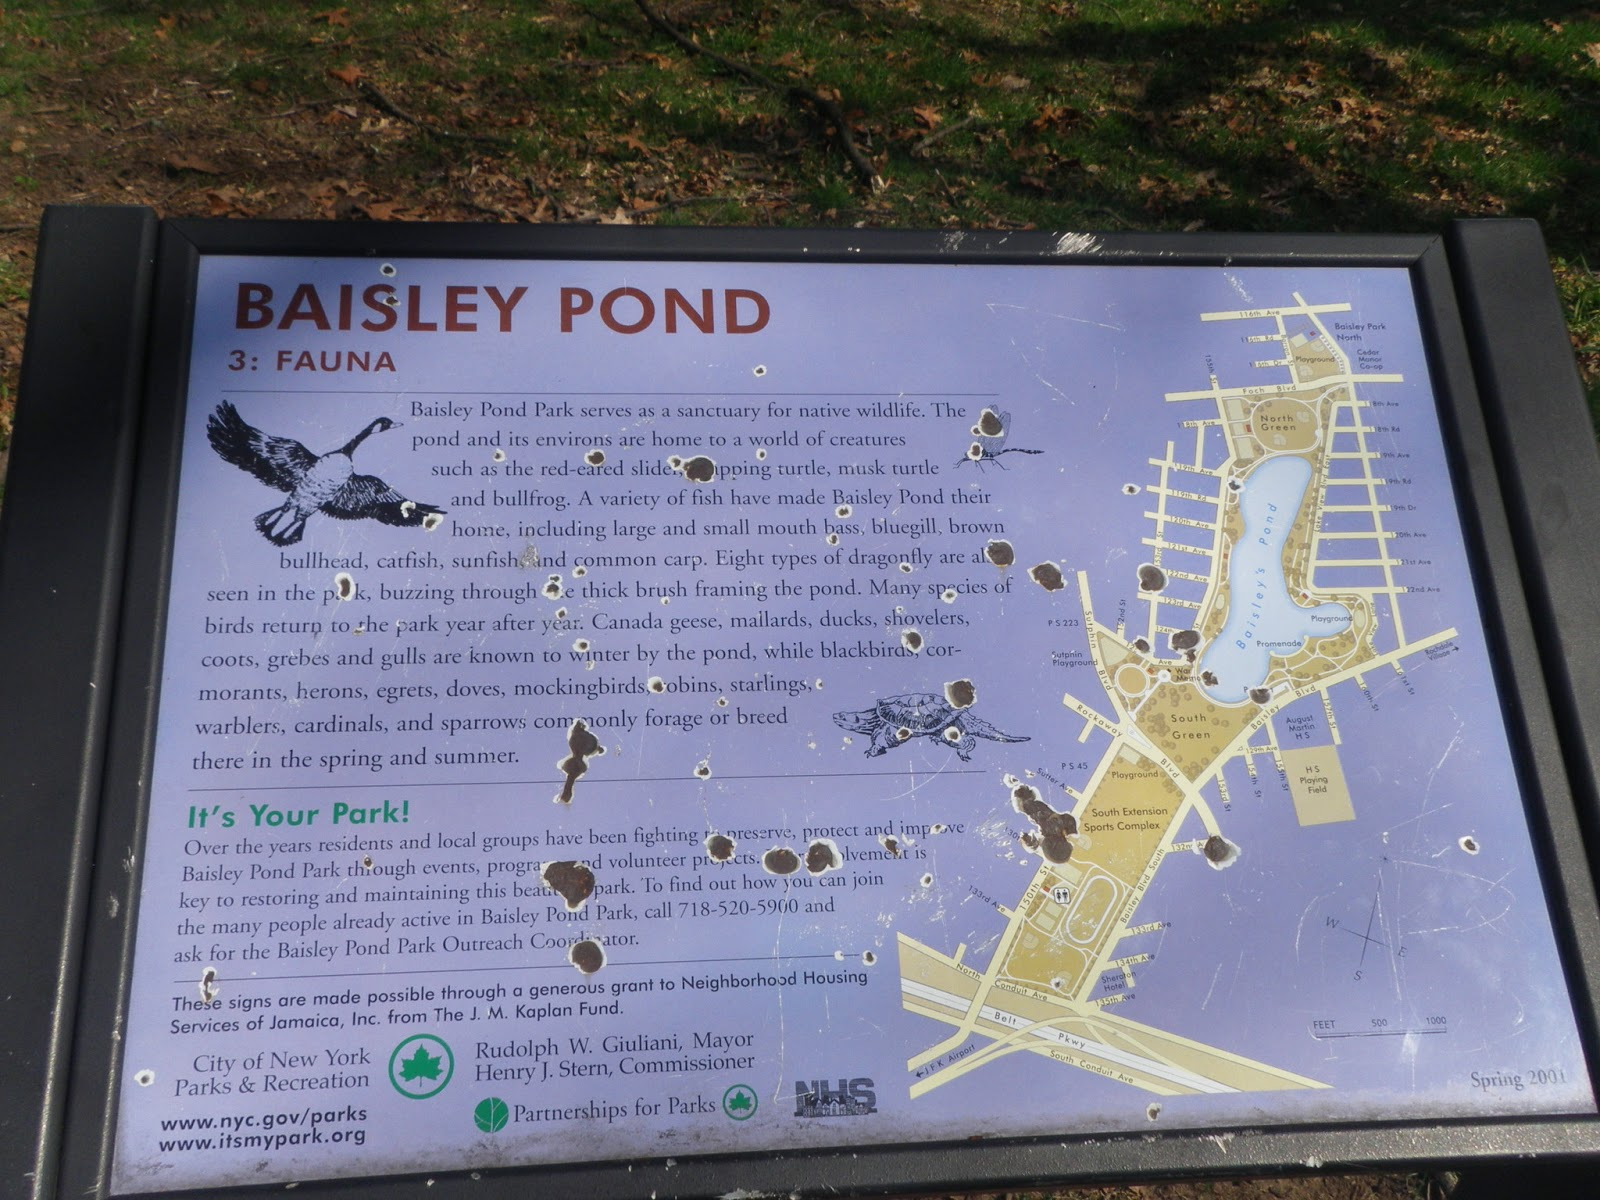 baisley pond has small mouth bass